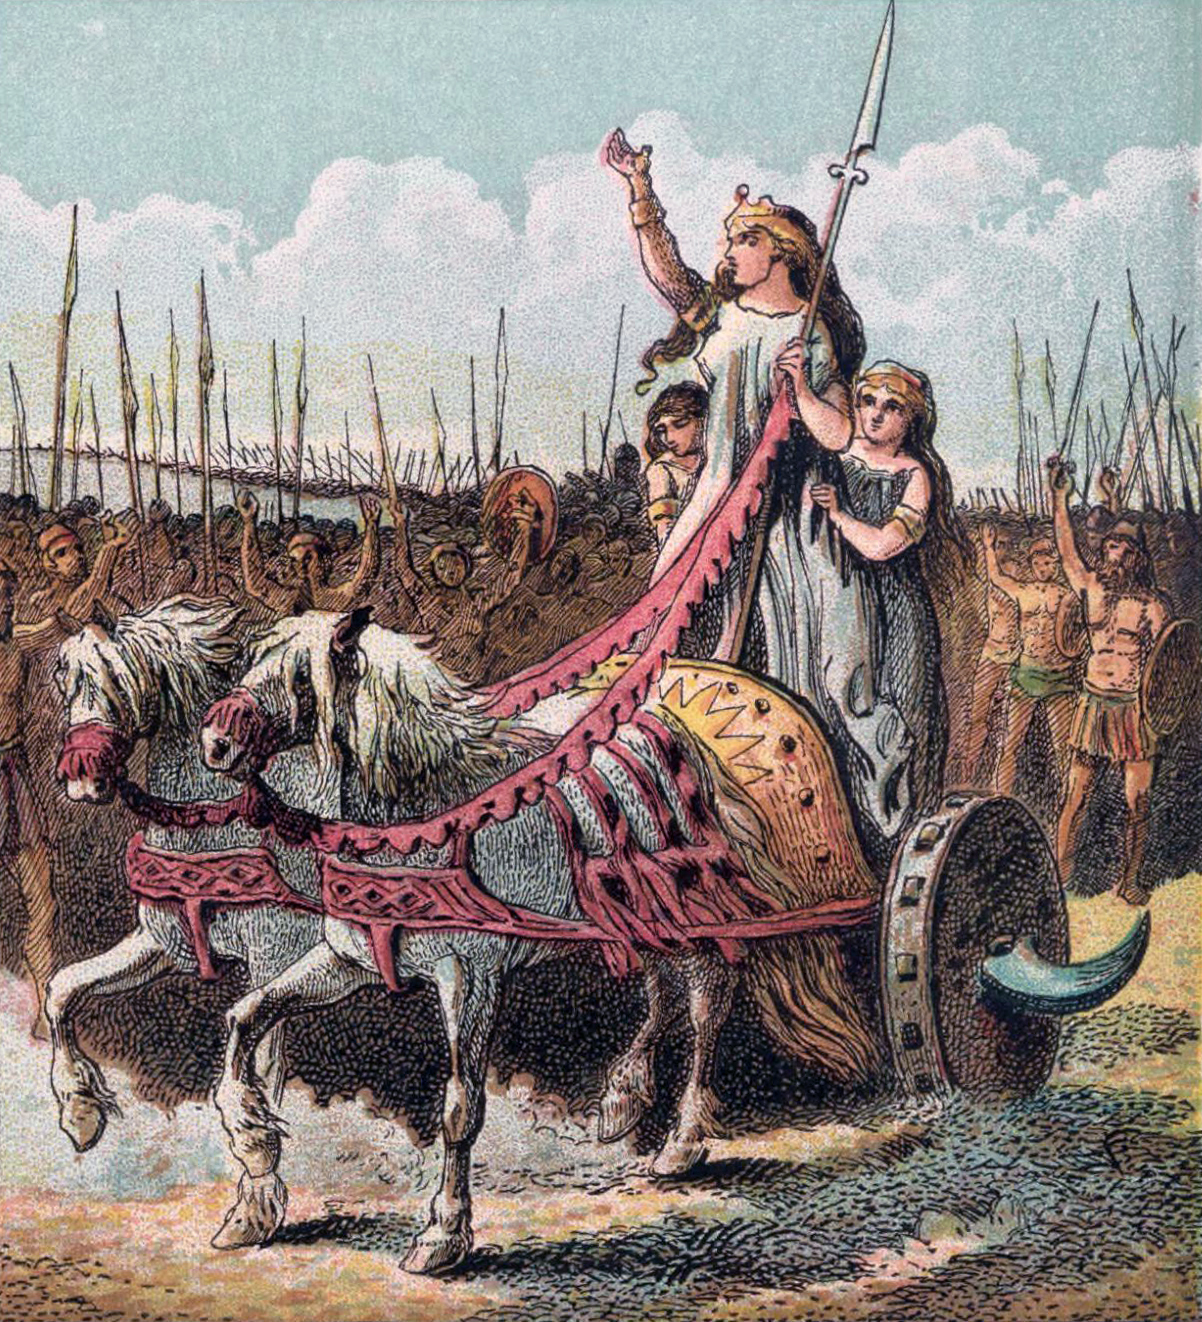 Boadicea, leader of the rebellion against the Romans. By Joseph Martin Kronheim (1810–96)[1] - This file has been extracted from another file: Pictures of English History - Plates I to IV.jpg, Public Domain, https://commons.wikimedia.org/w/index.php?curid=12705208